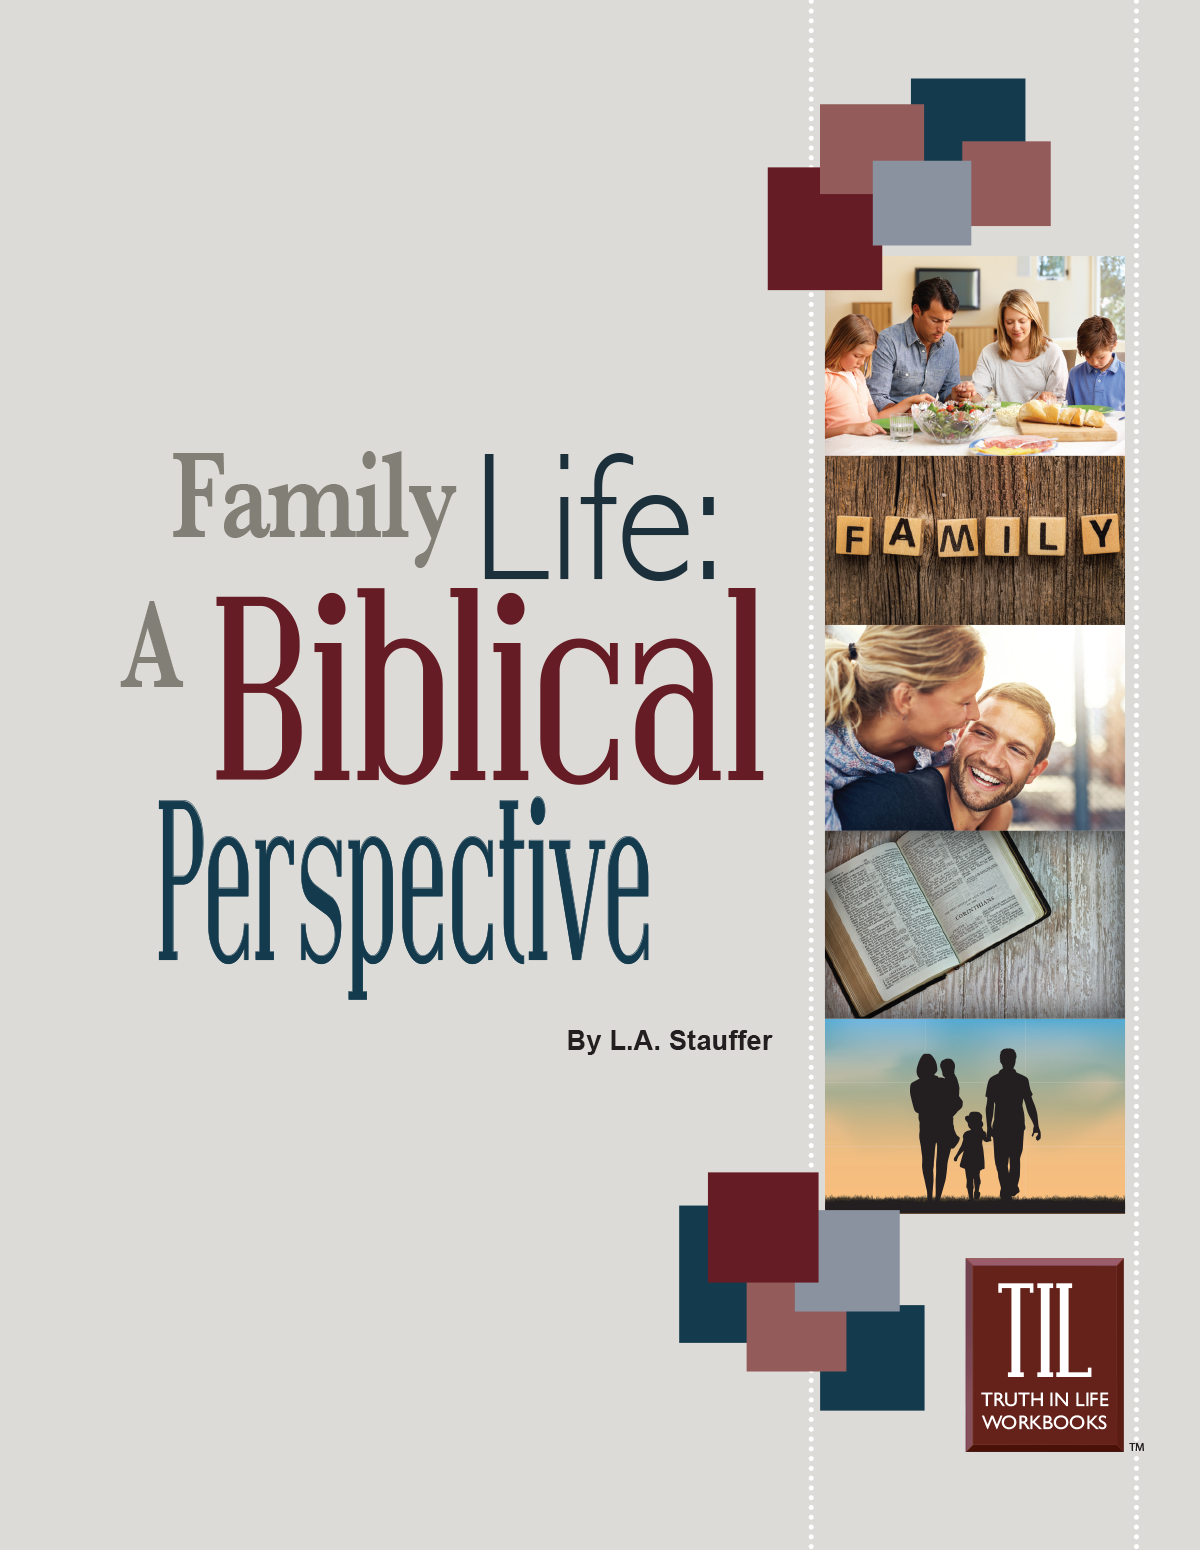 til-family-life-a-biblical-perspective-cover-front.png